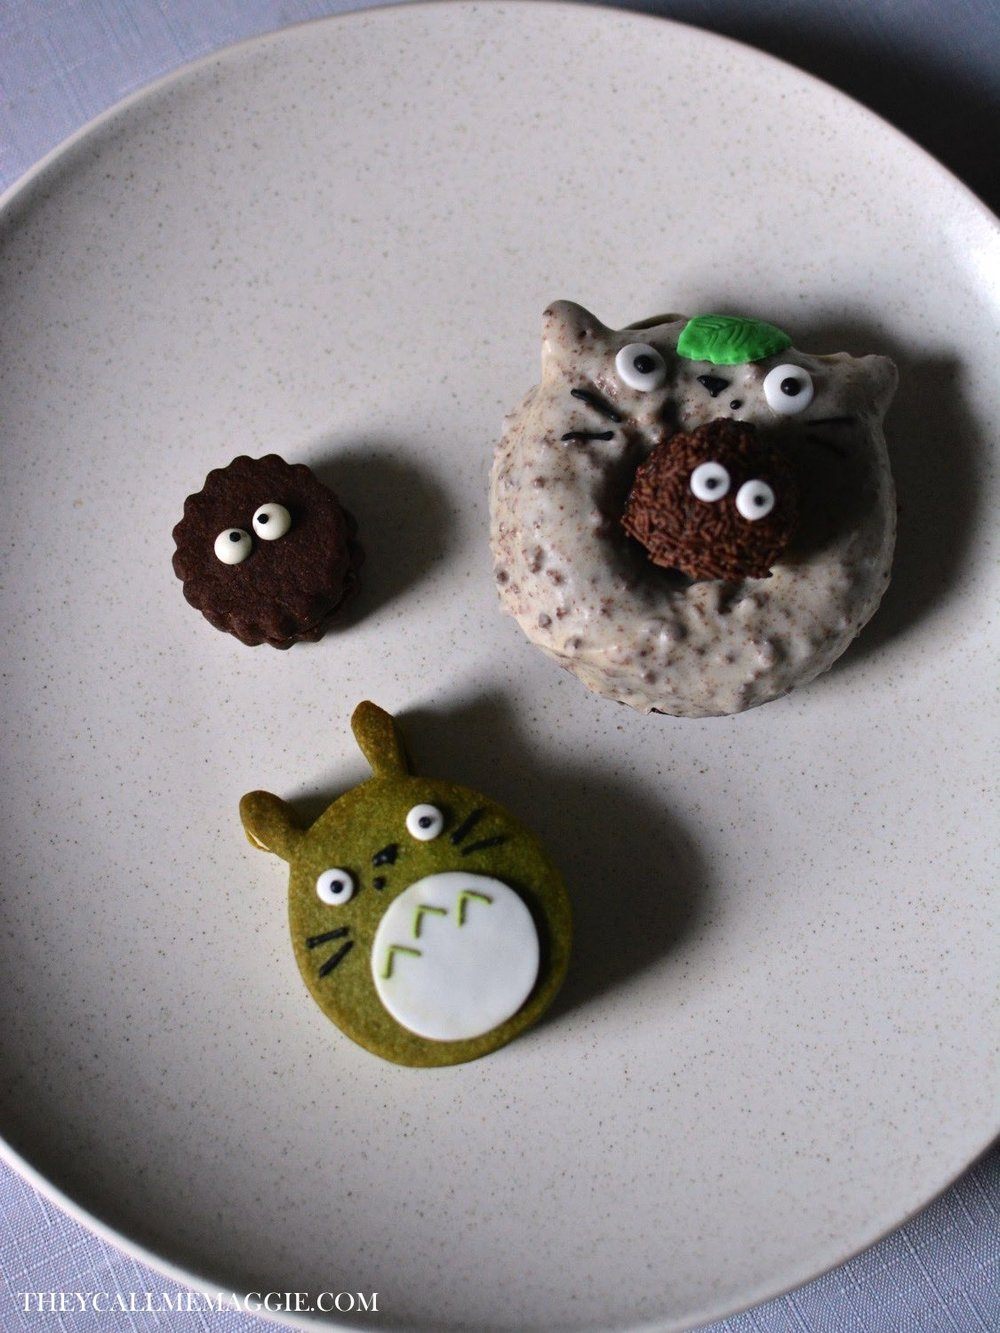 Cuteness galore. Legit impossible to eat (for me anyway), I had to let my siblings tuck into these goodies.